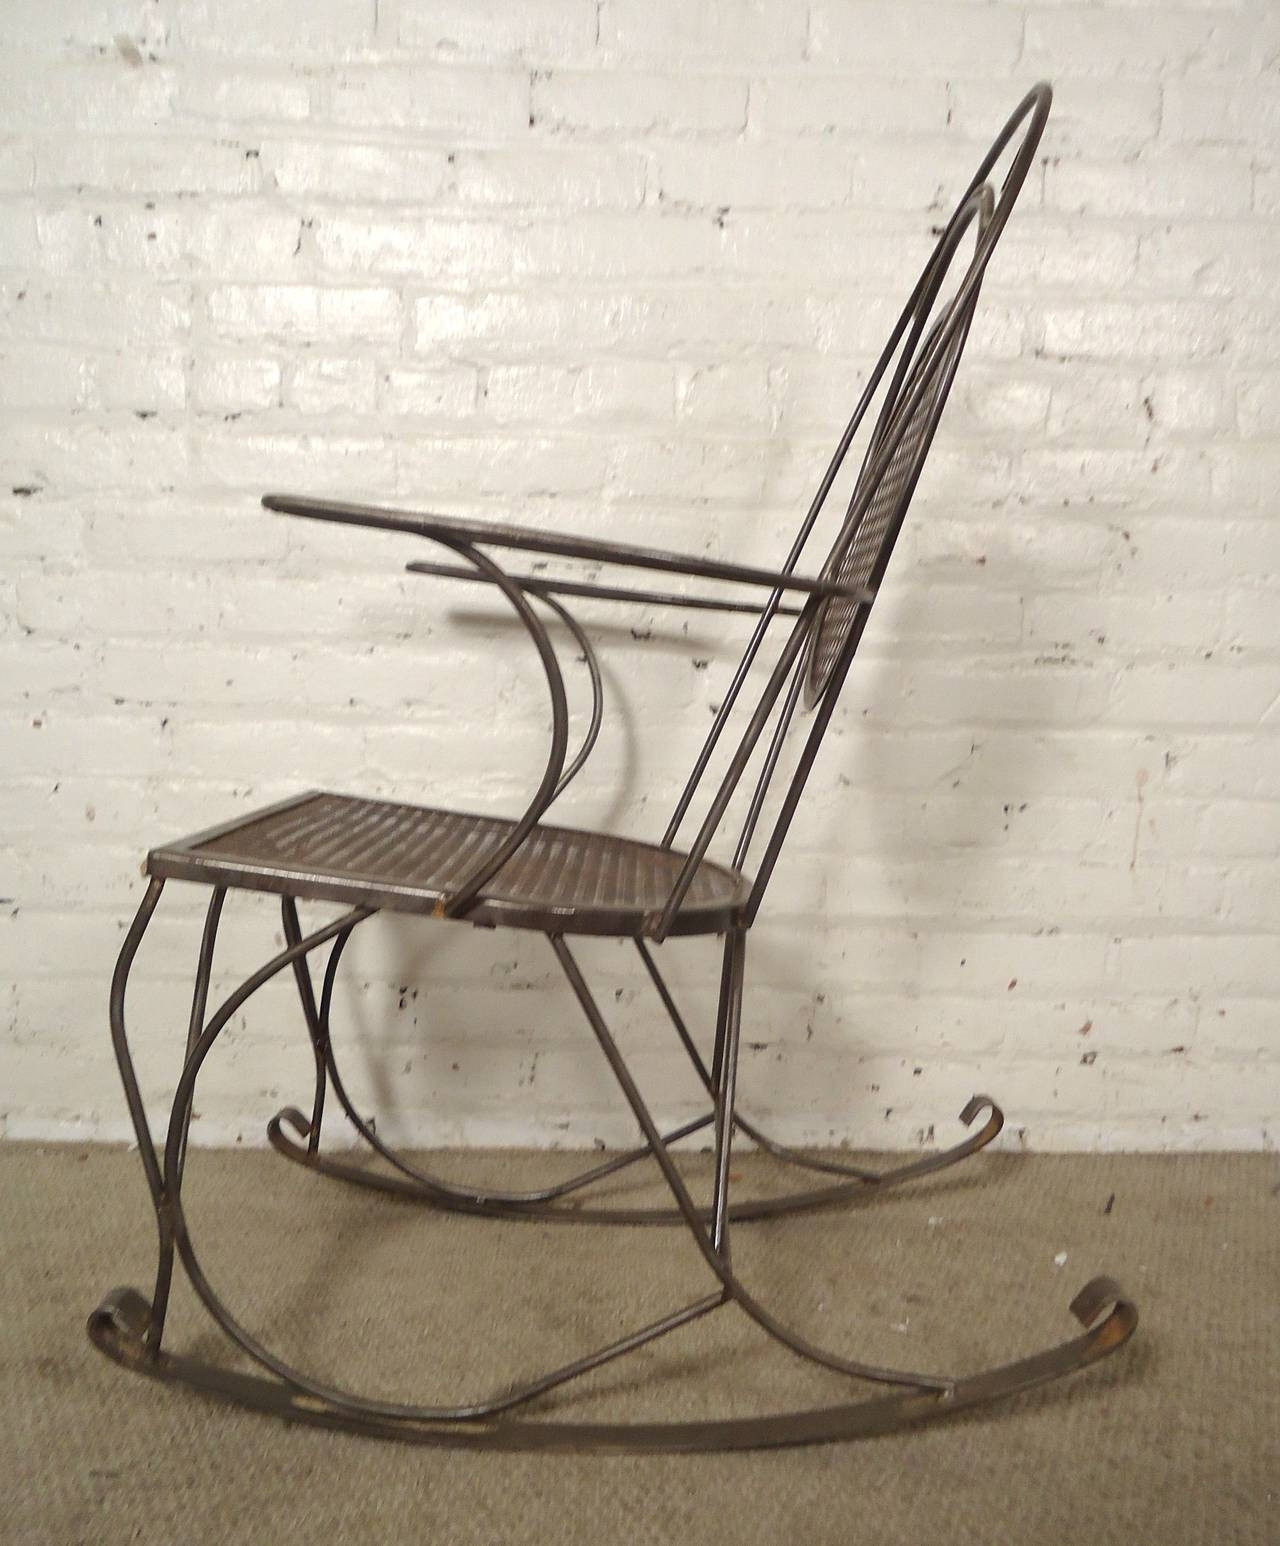 Retro Outdoor Rocking Chairs Pertaining To Widely Used Vintage Outdoor Metal Rocking Chairs – Outdoor Designs (View 15 of 15)